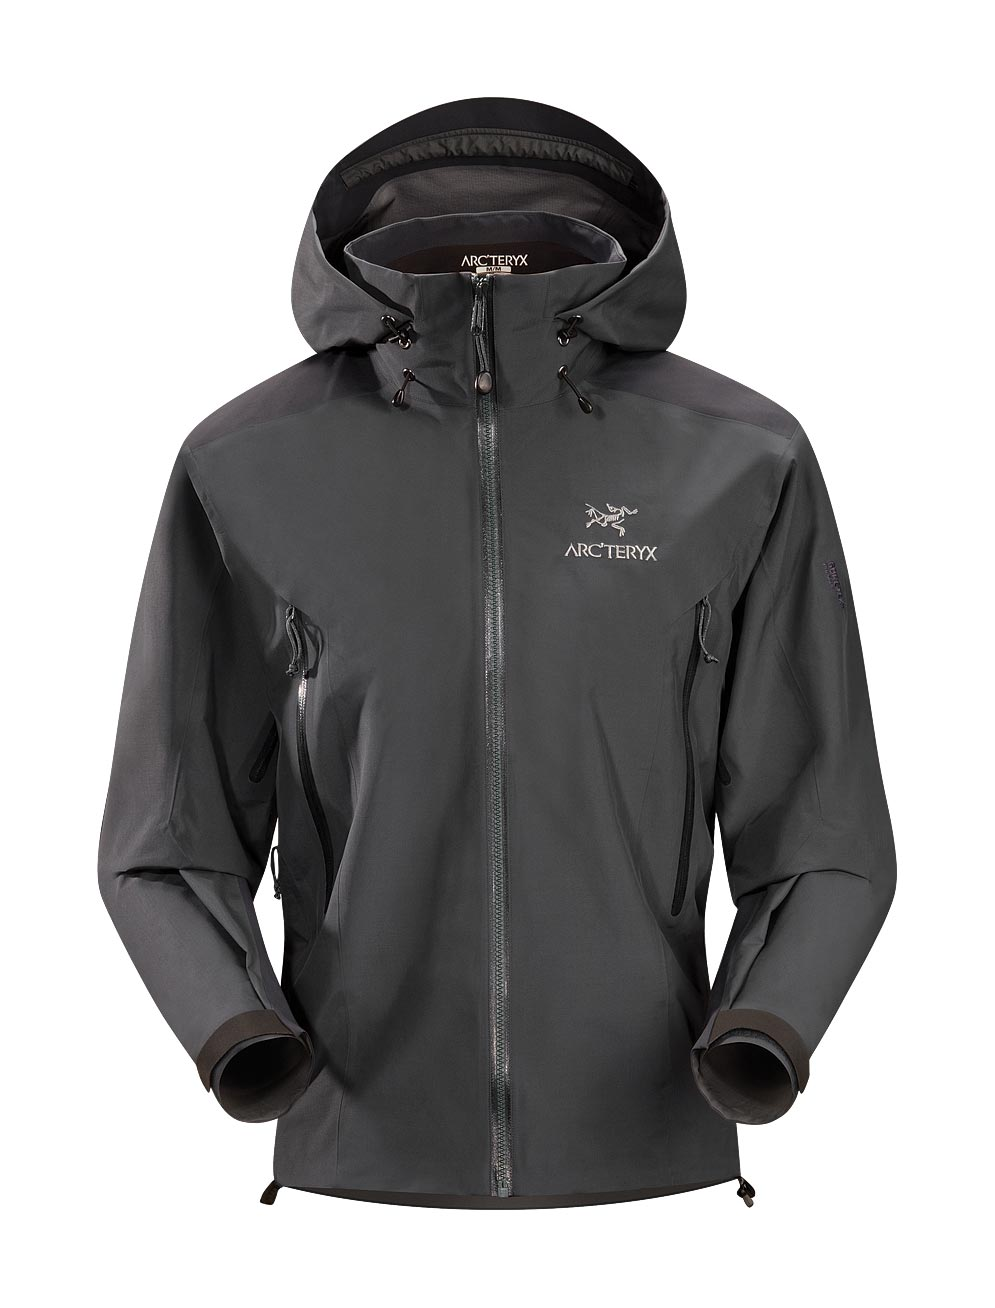 Arcteryx Nightshade Beta AR Jacket